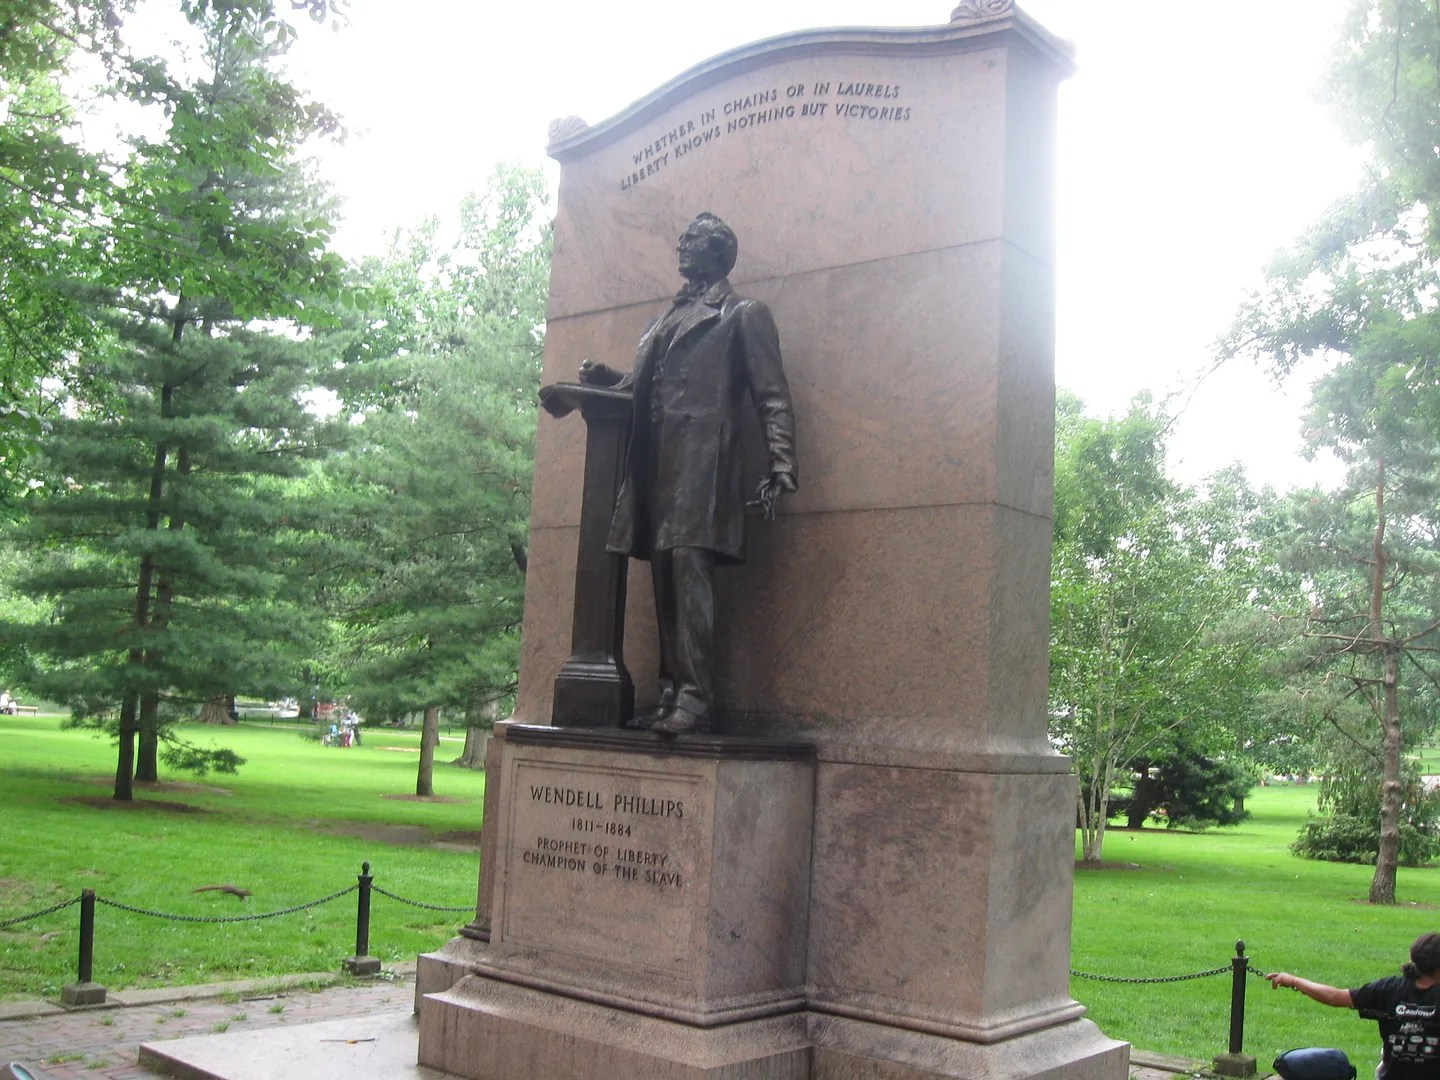 Wendell Phillips statue, Boston Public Garden